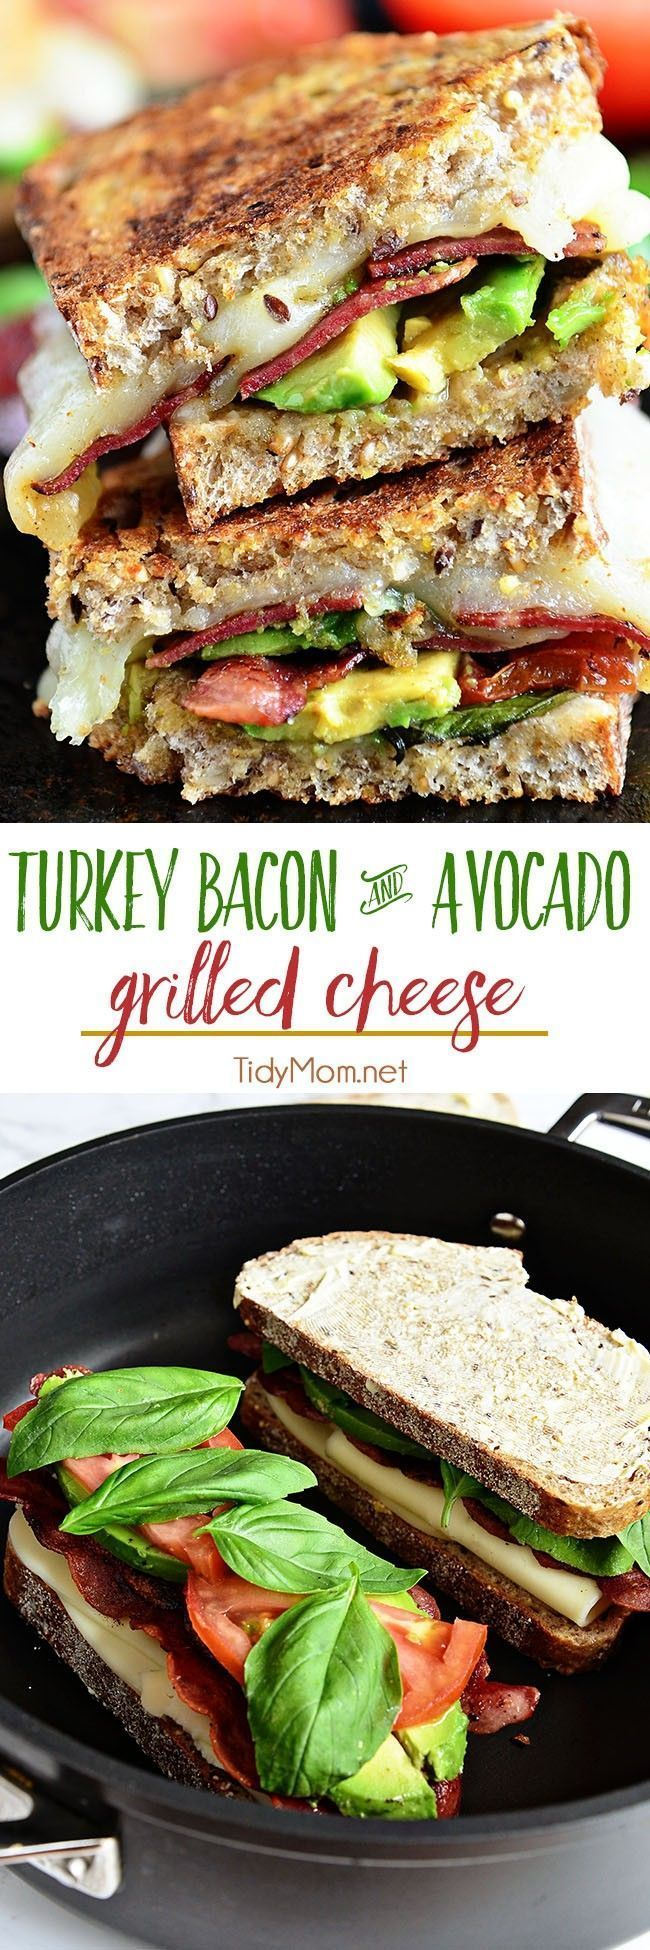 Turkey Bacon and Avocado Grilled Cheese sandwich loaded with fresh basil, tomatoes and mozzarella cheese on a hearty artisan bread.